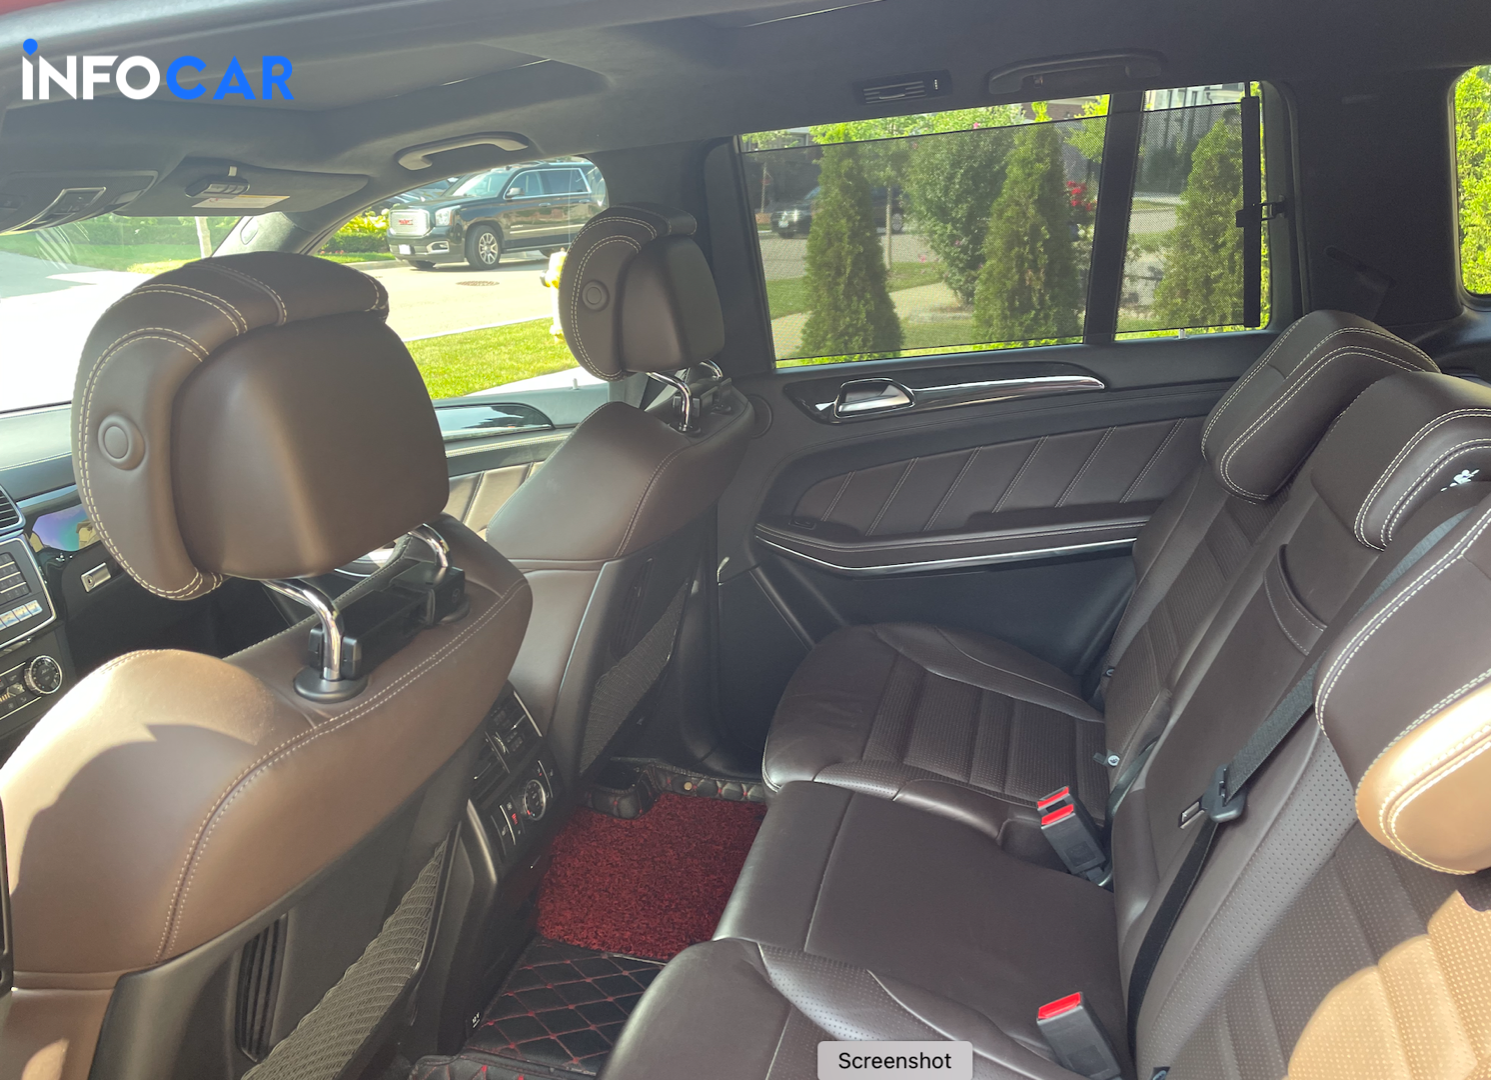 2016 Mercedes-Benz GLS-Class 63 AMG - INFOCAR - Toronto's Most Comprehensive New and Used Auto Trading Platform